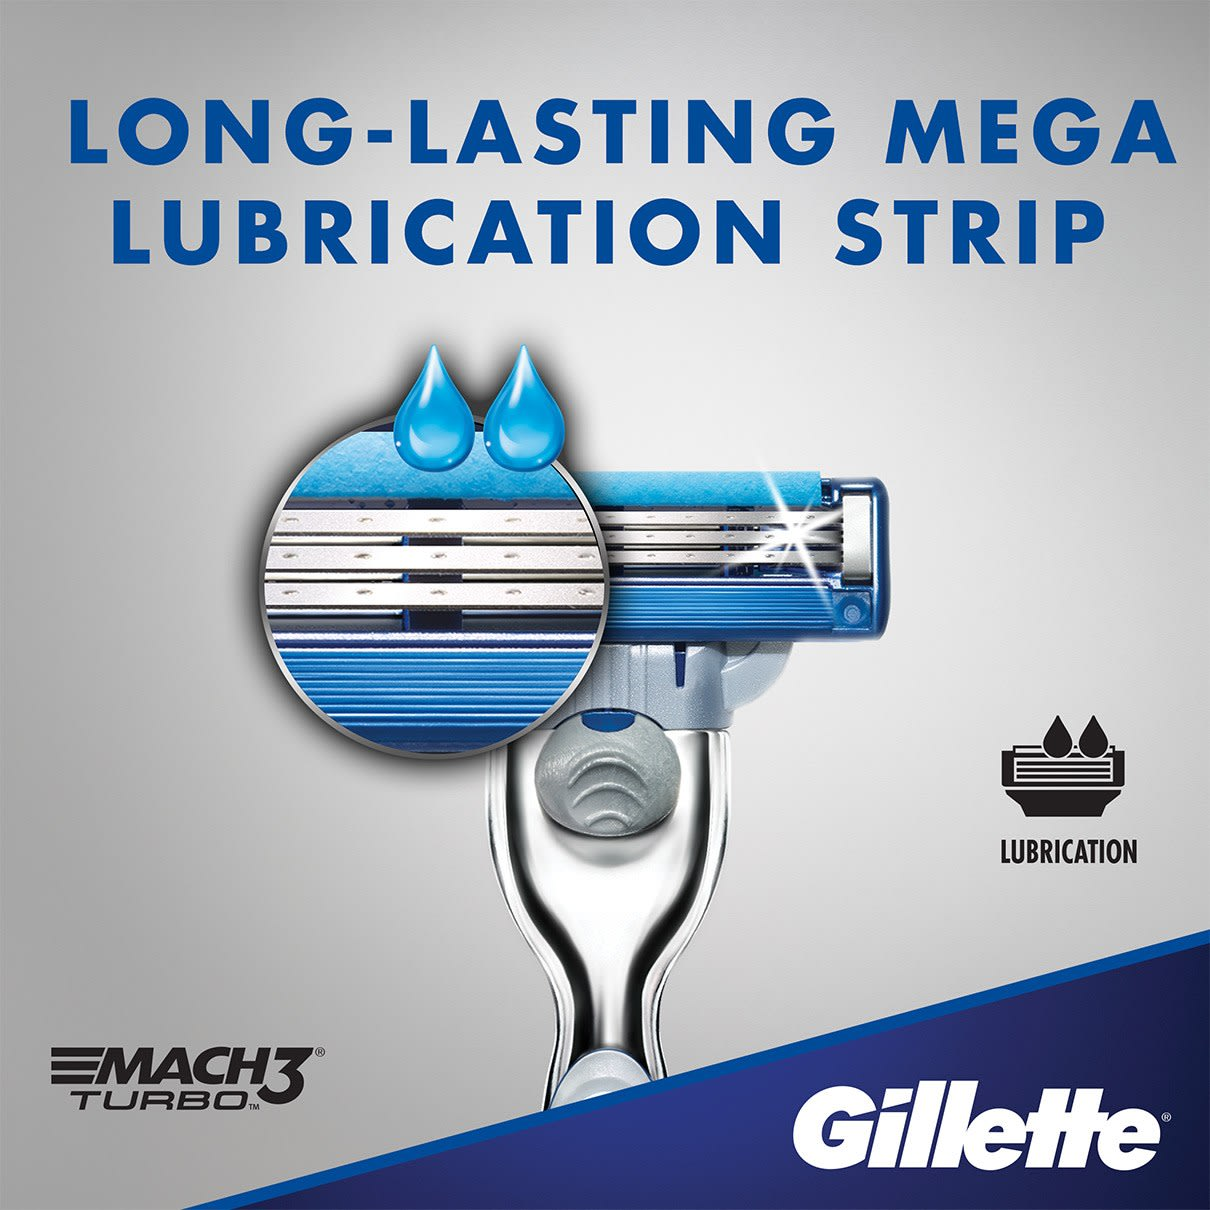 Long-lasting mega lubrication strip